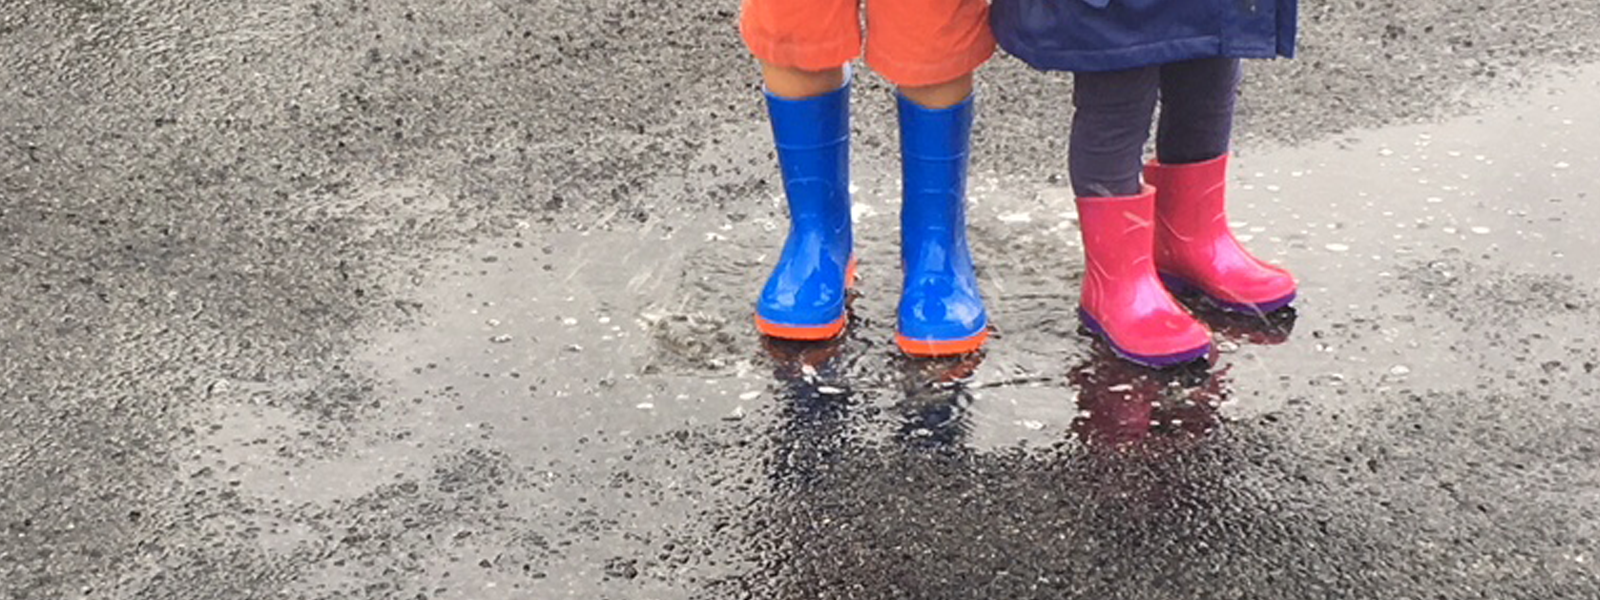 Two children in gumboots standing in a puddle.